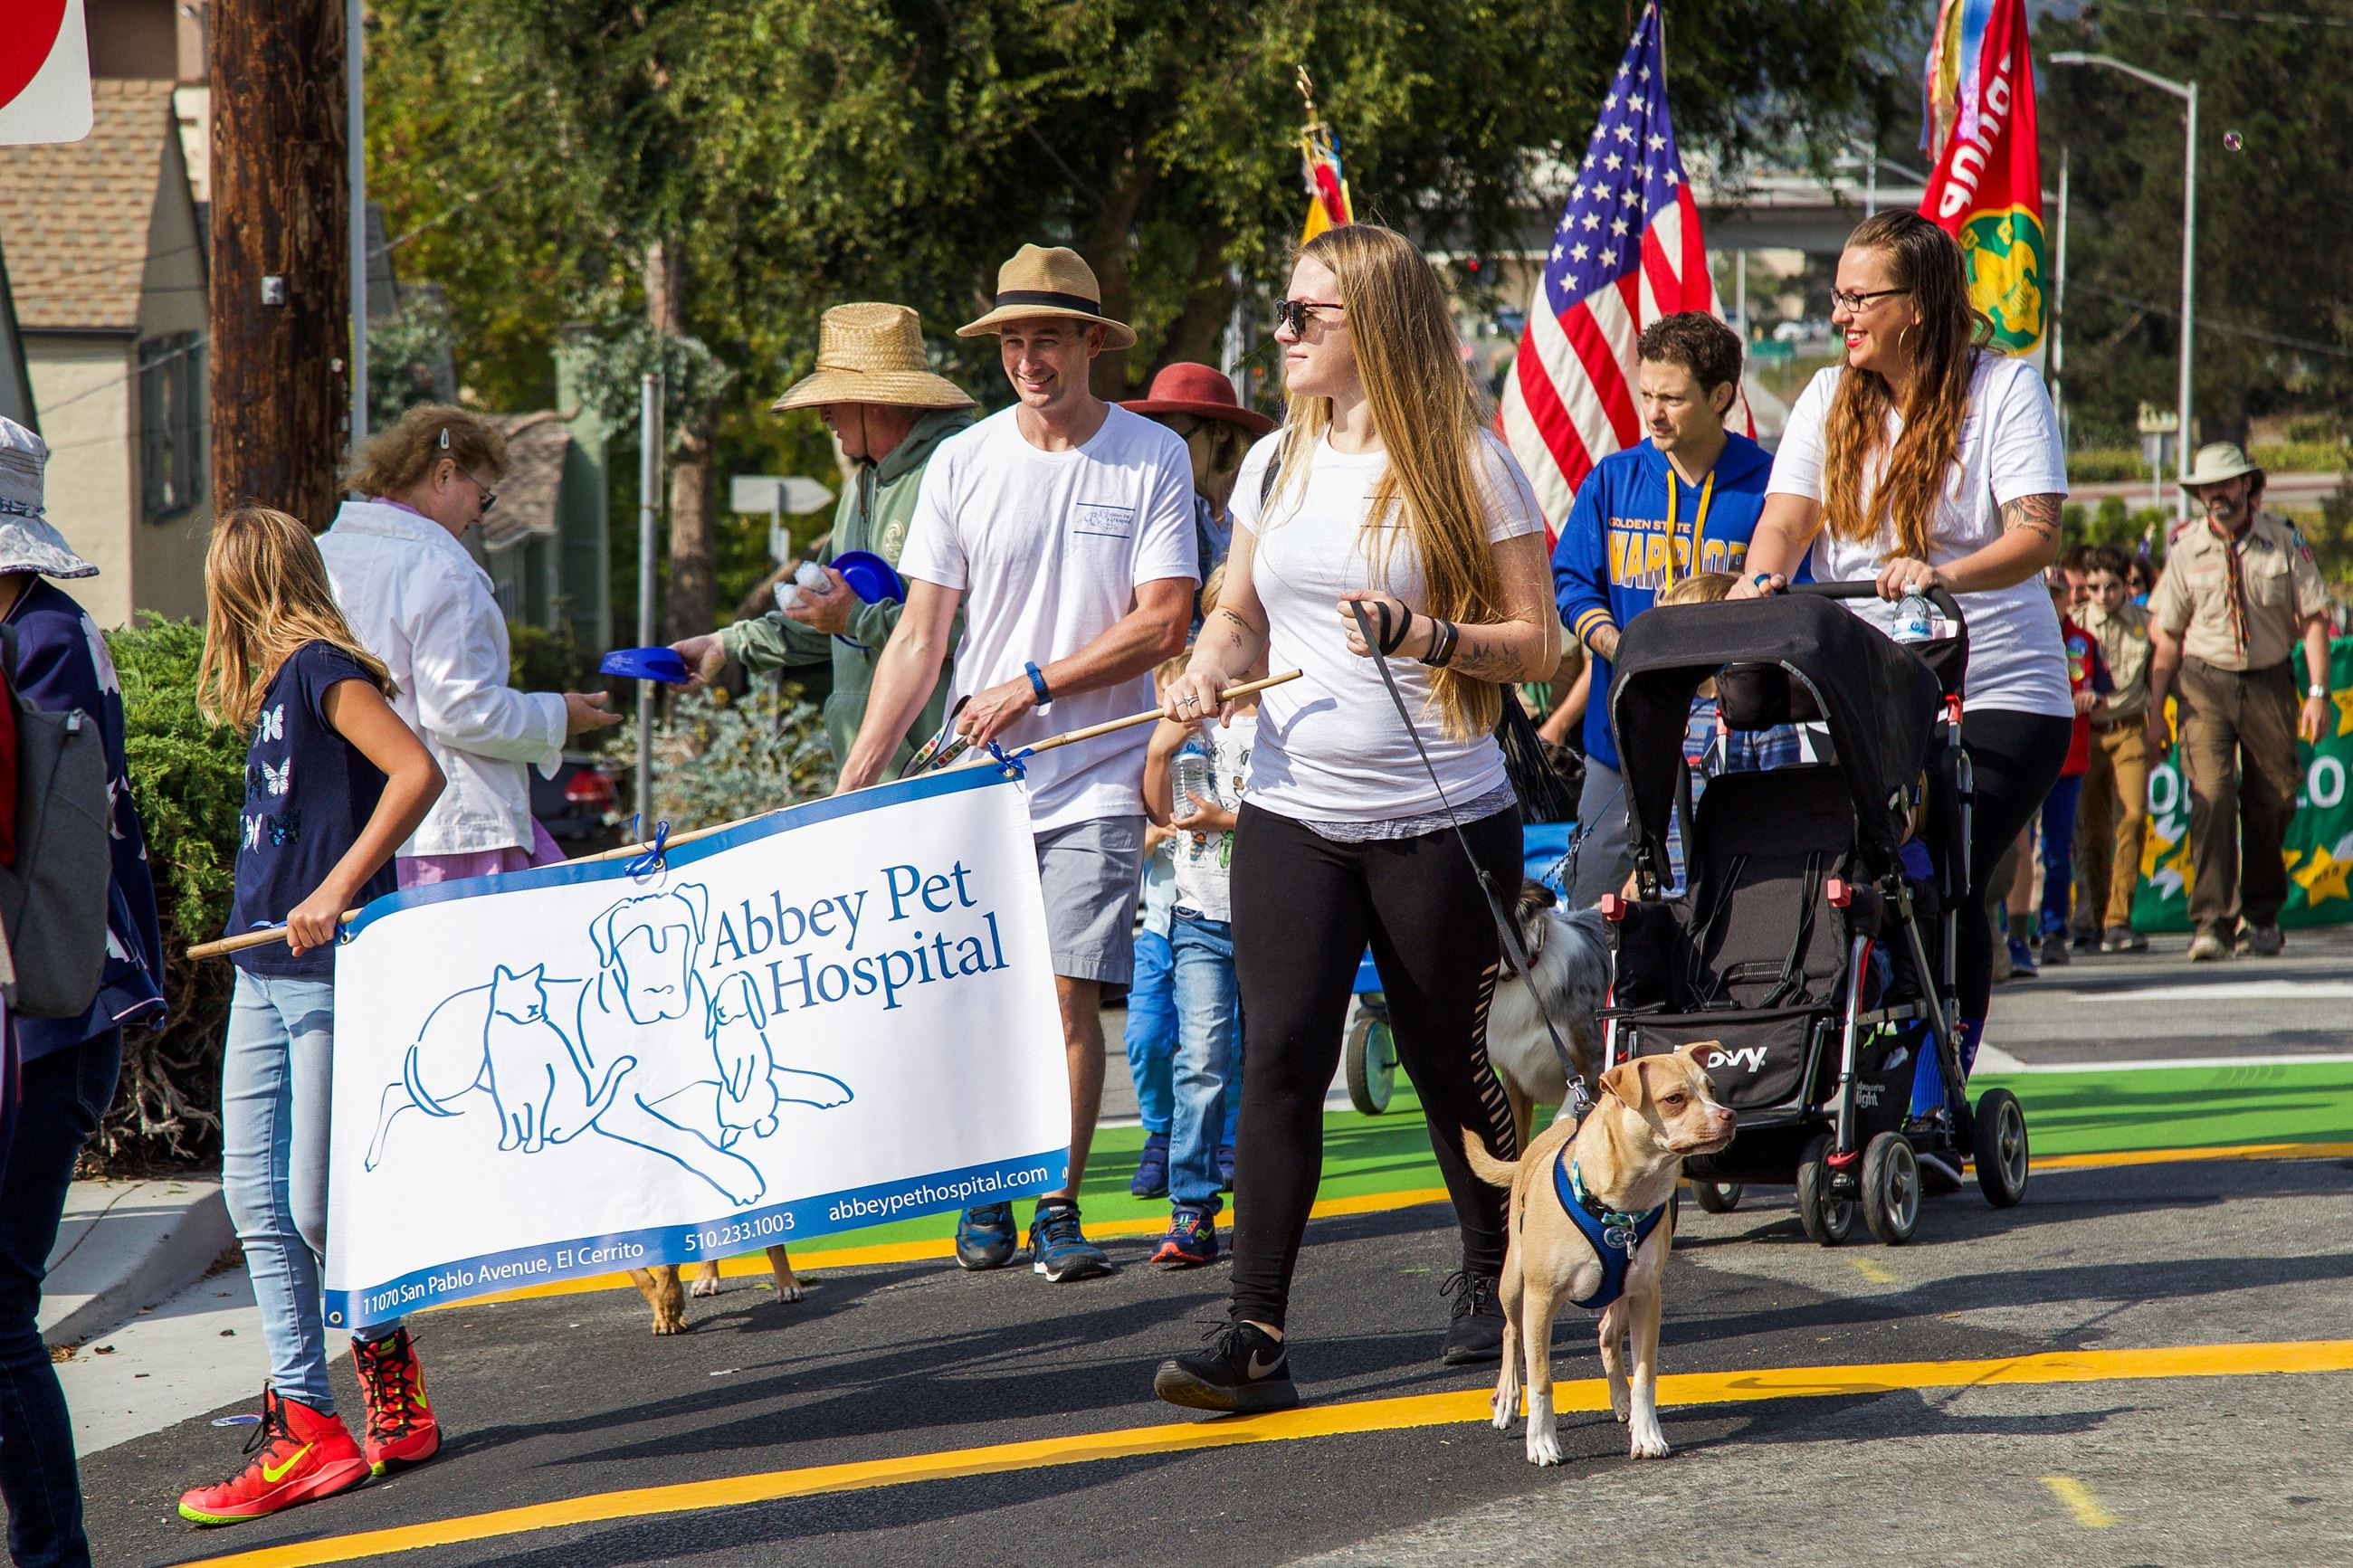 272 Abbey Pet Hospital in Parade - Photo by Marin Stuart